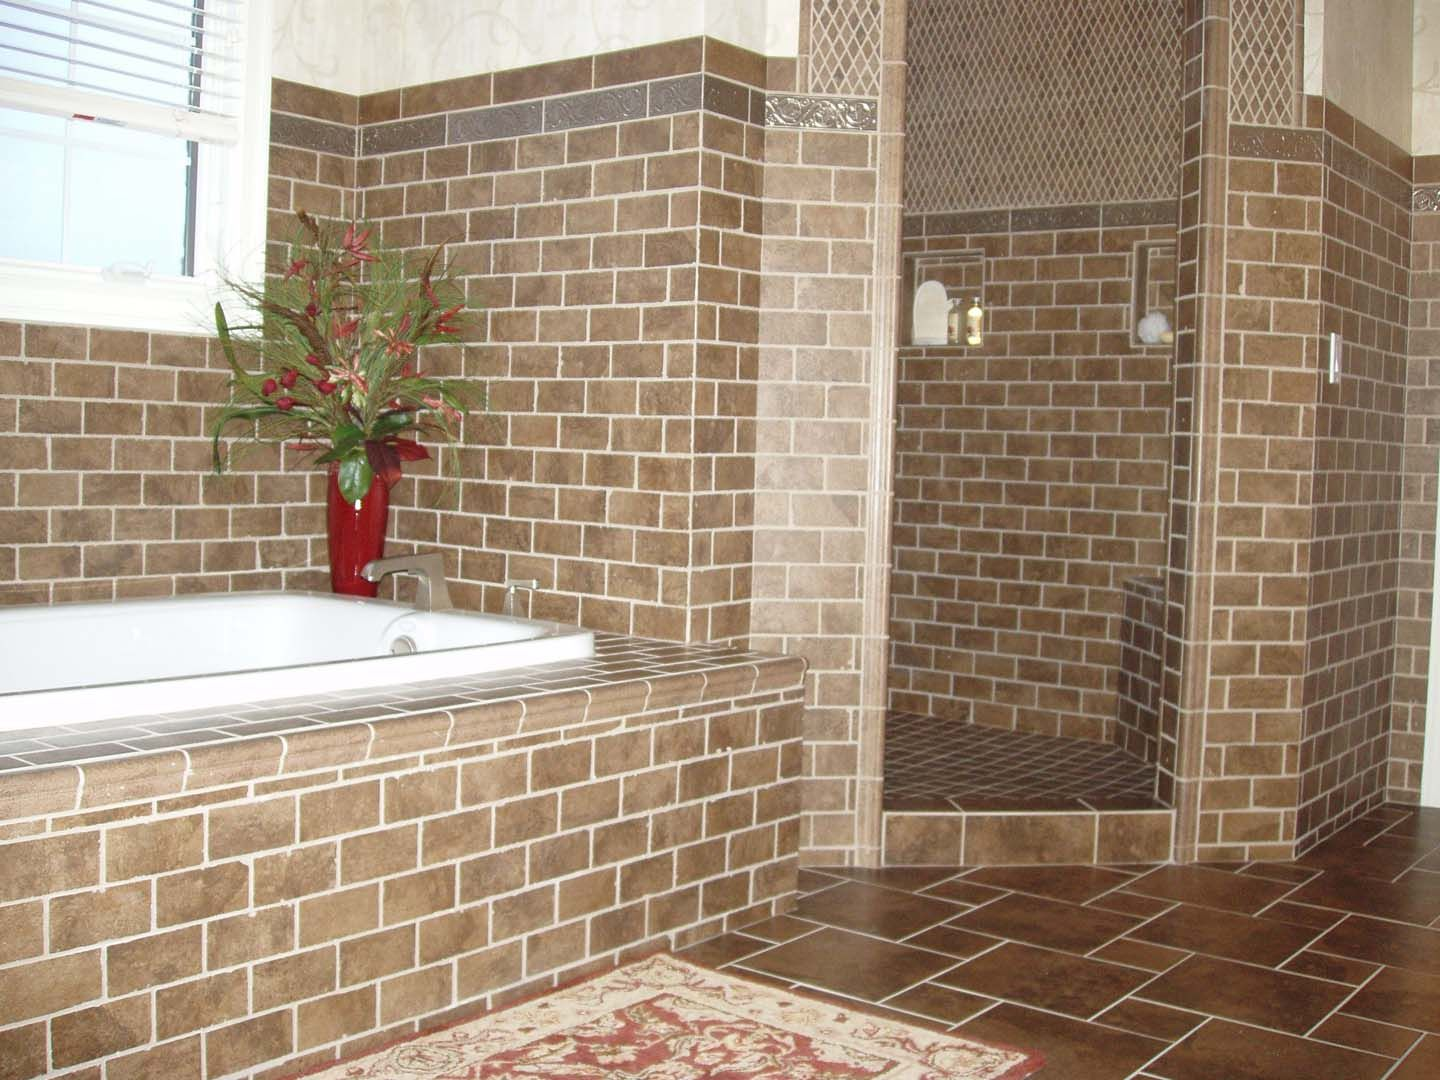 Custom Tiled Soaking Tub with Separate Walk In Shower. Custom Tiled Soaking Tub with Separate Walk In Shower   Bathroom